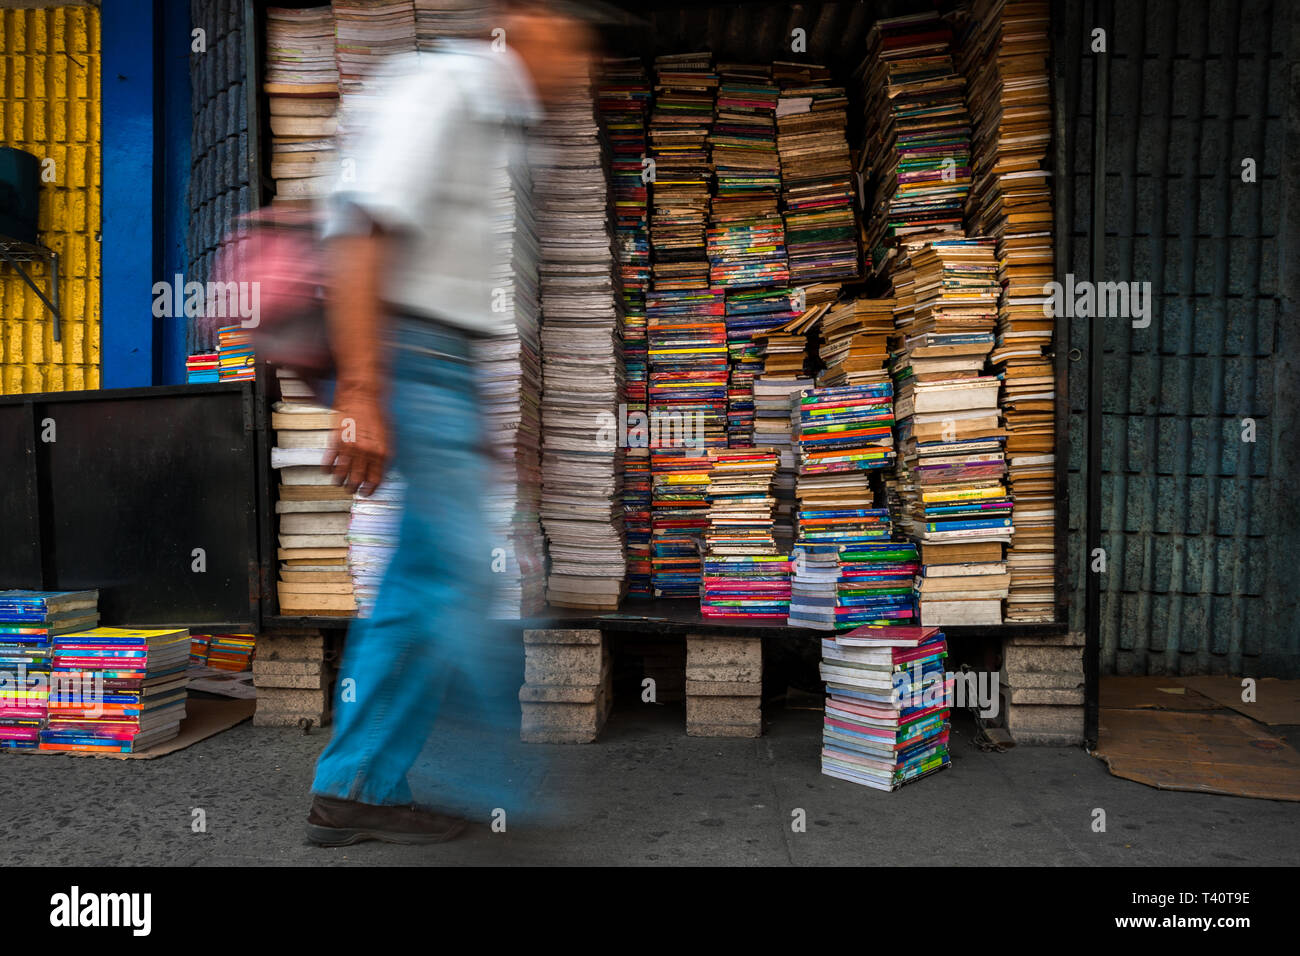 A Salvadoran man walks in front of piles of used books stacked in a box on the street in a secondhand bookshop in San Salvador, El Salvador. Stock Photo